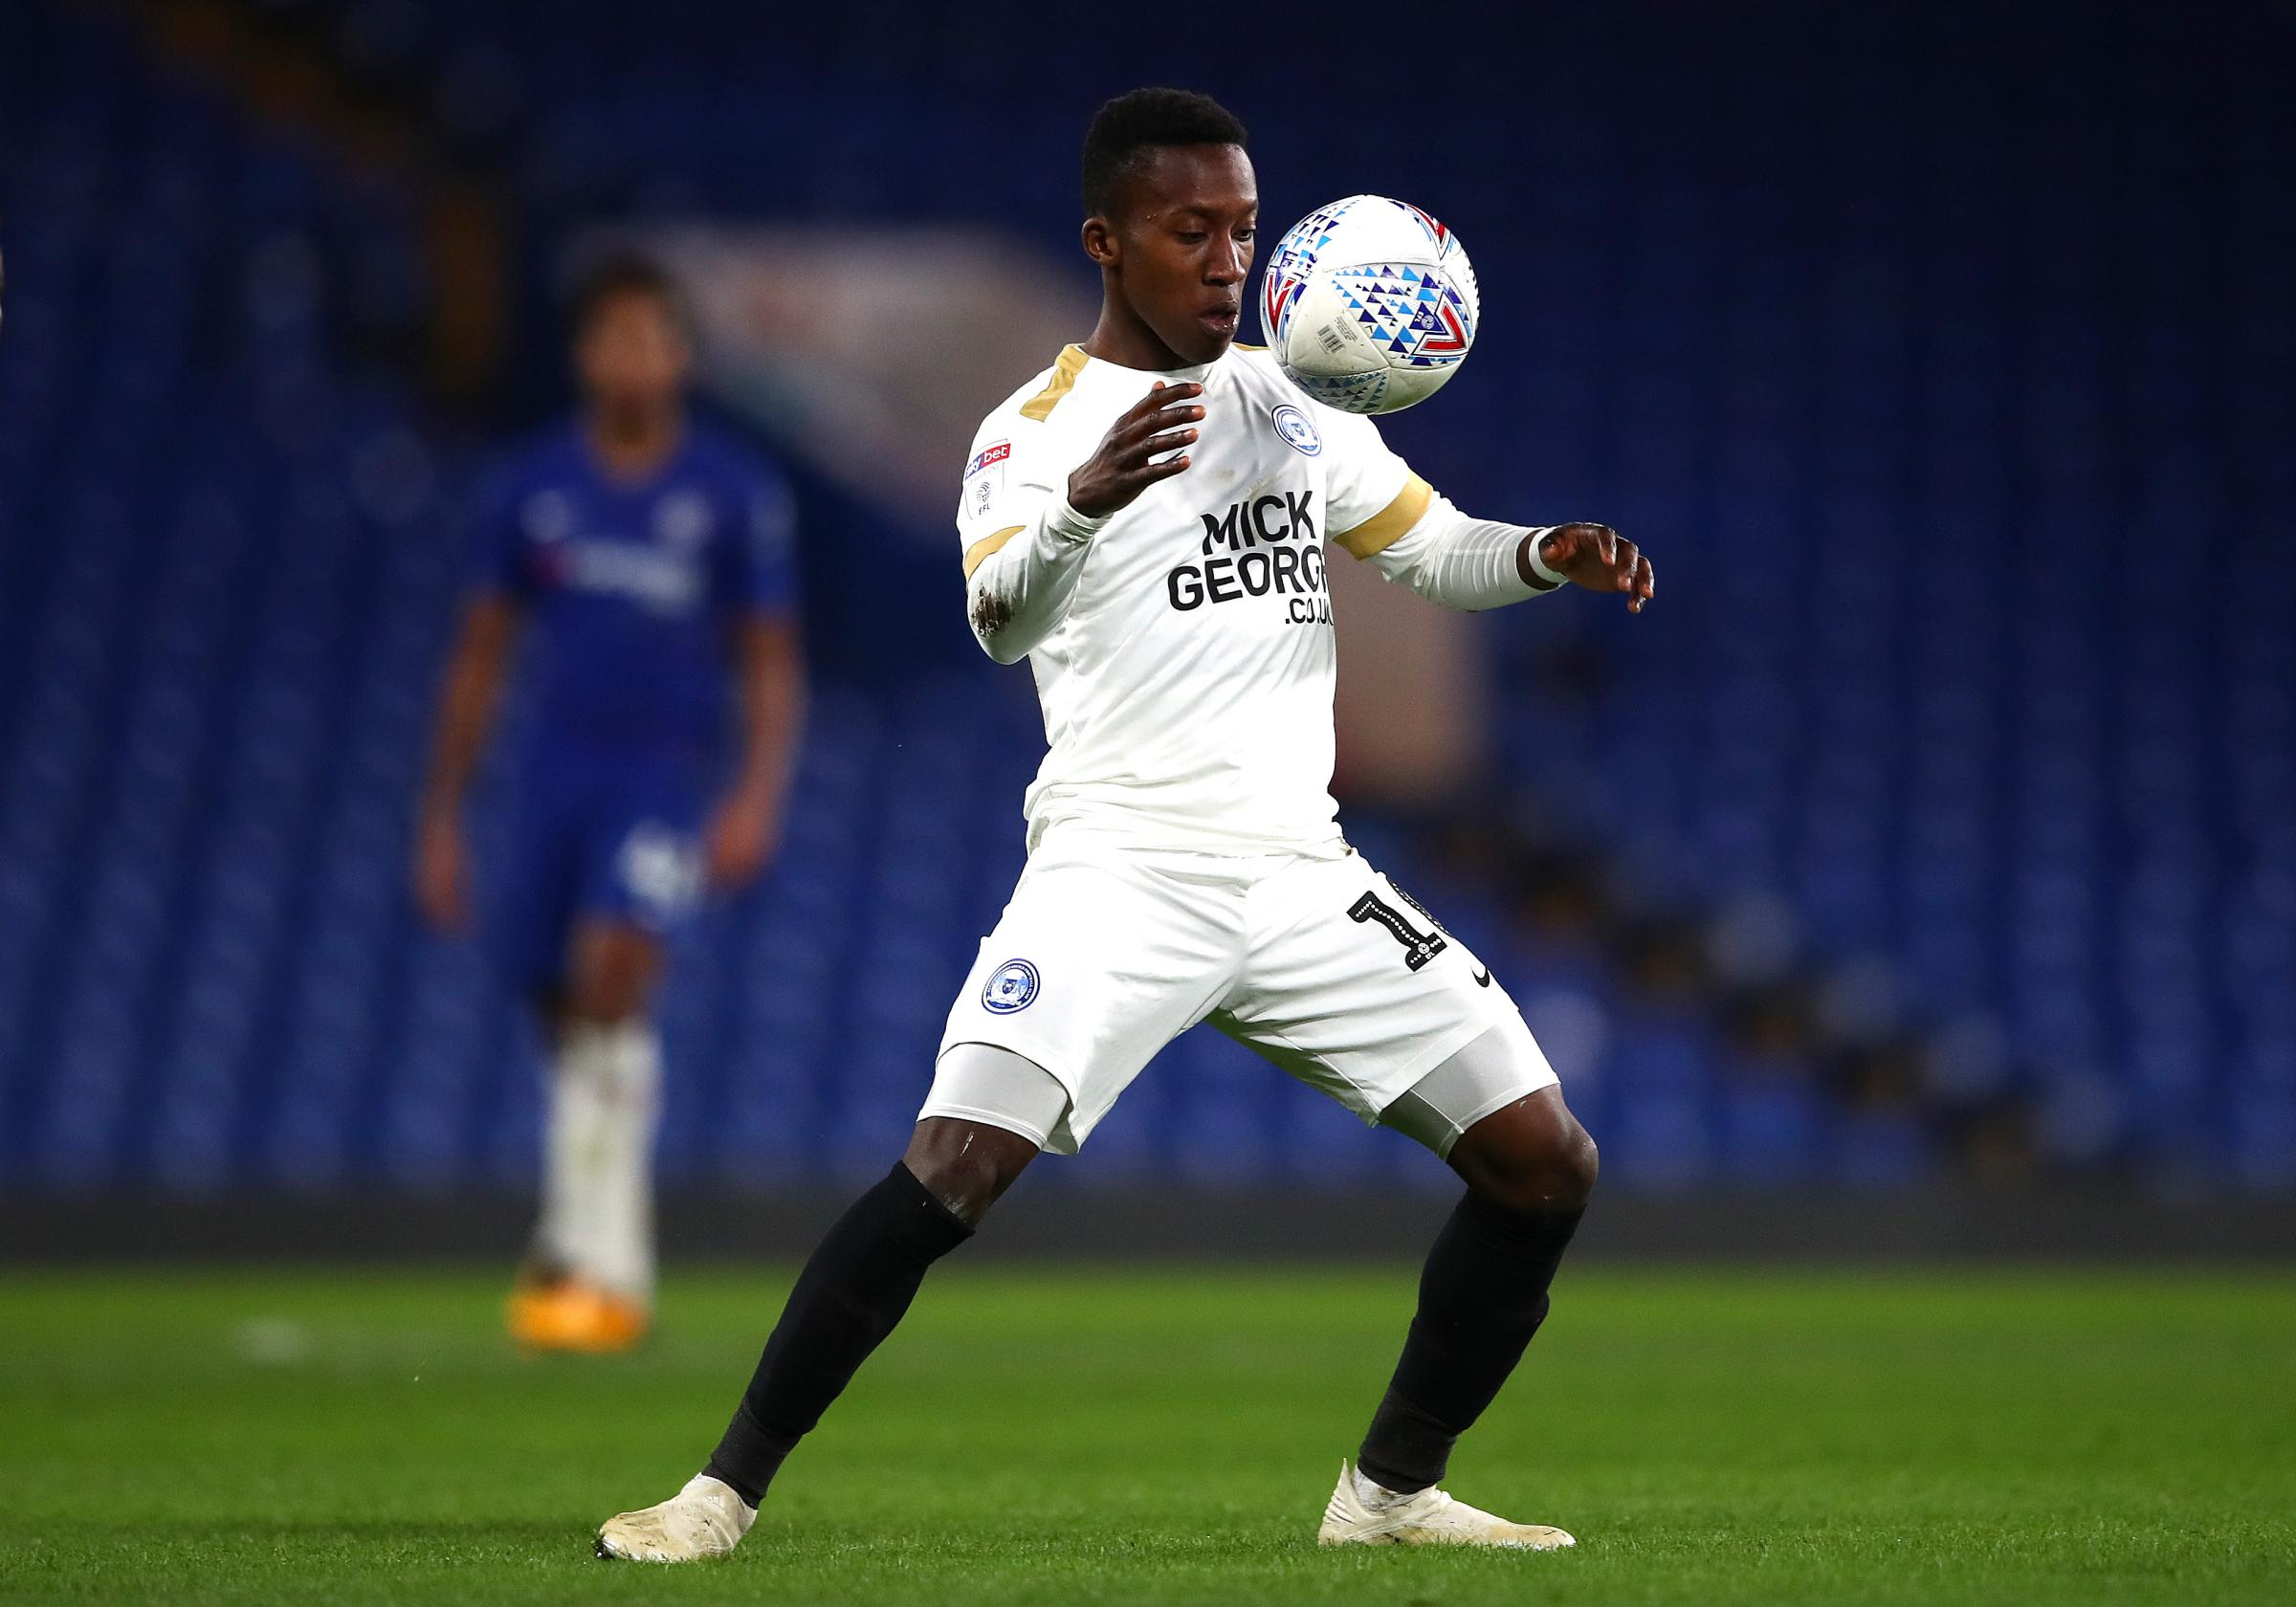 Karamoko brother Siriki Dembele attracting interest from Sheffield Utd and West Brom